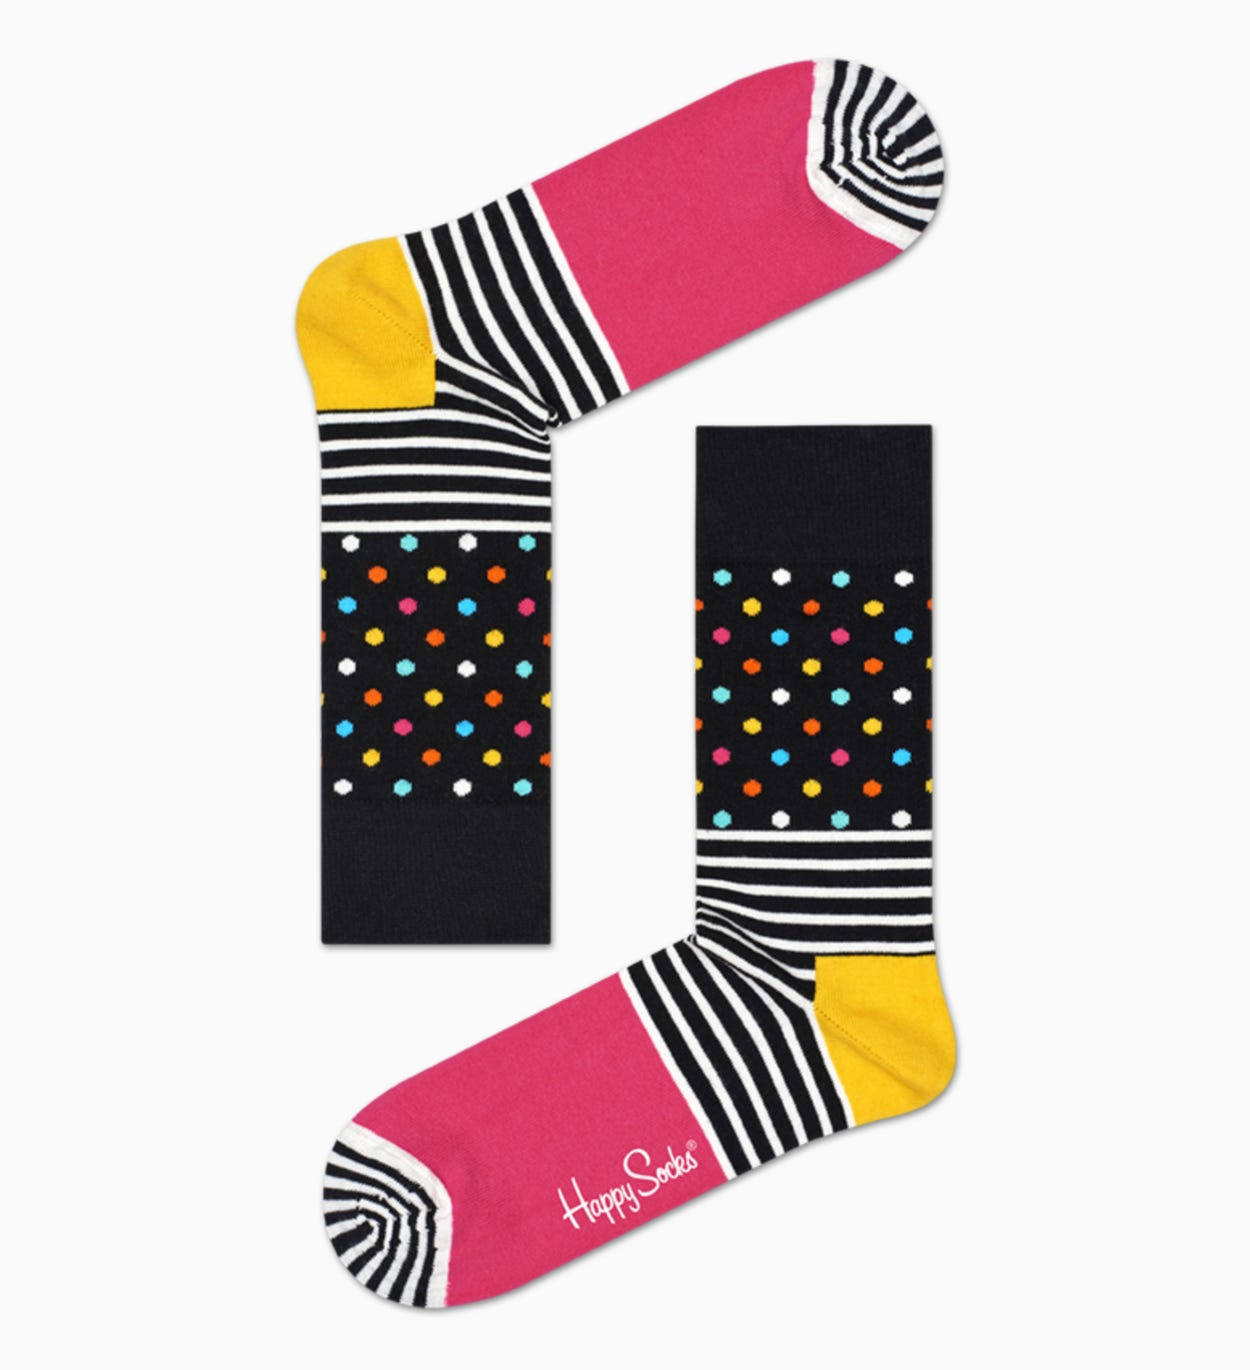 Stripes & Dots Sock